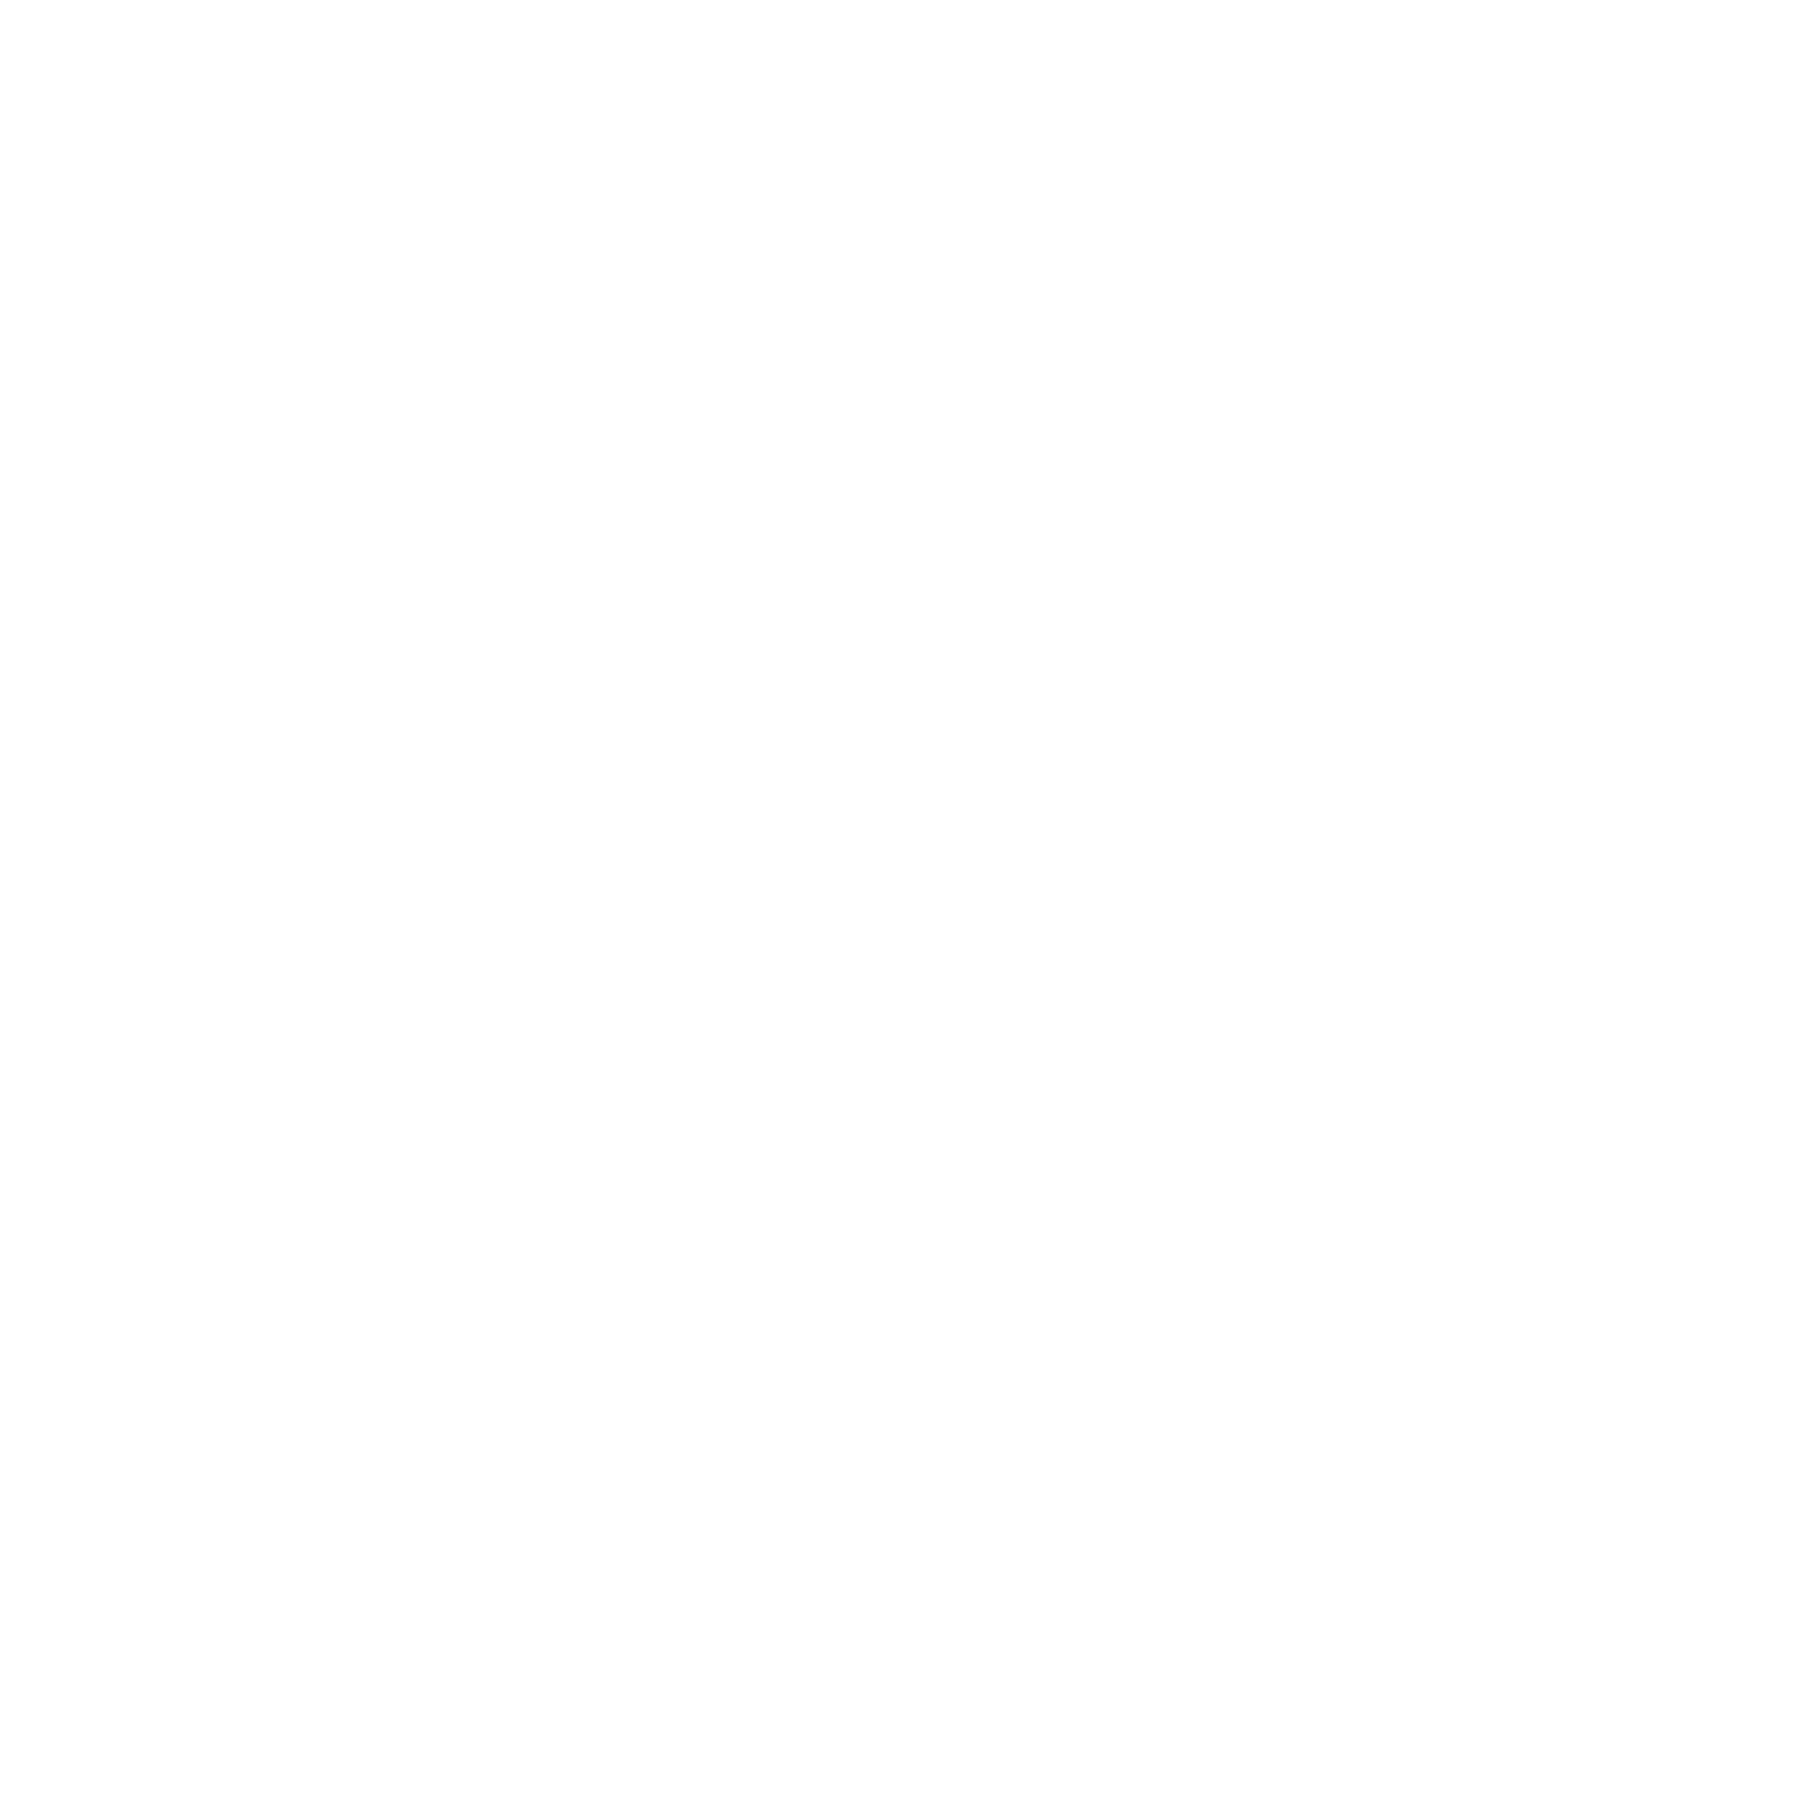 Hogue Law Firm